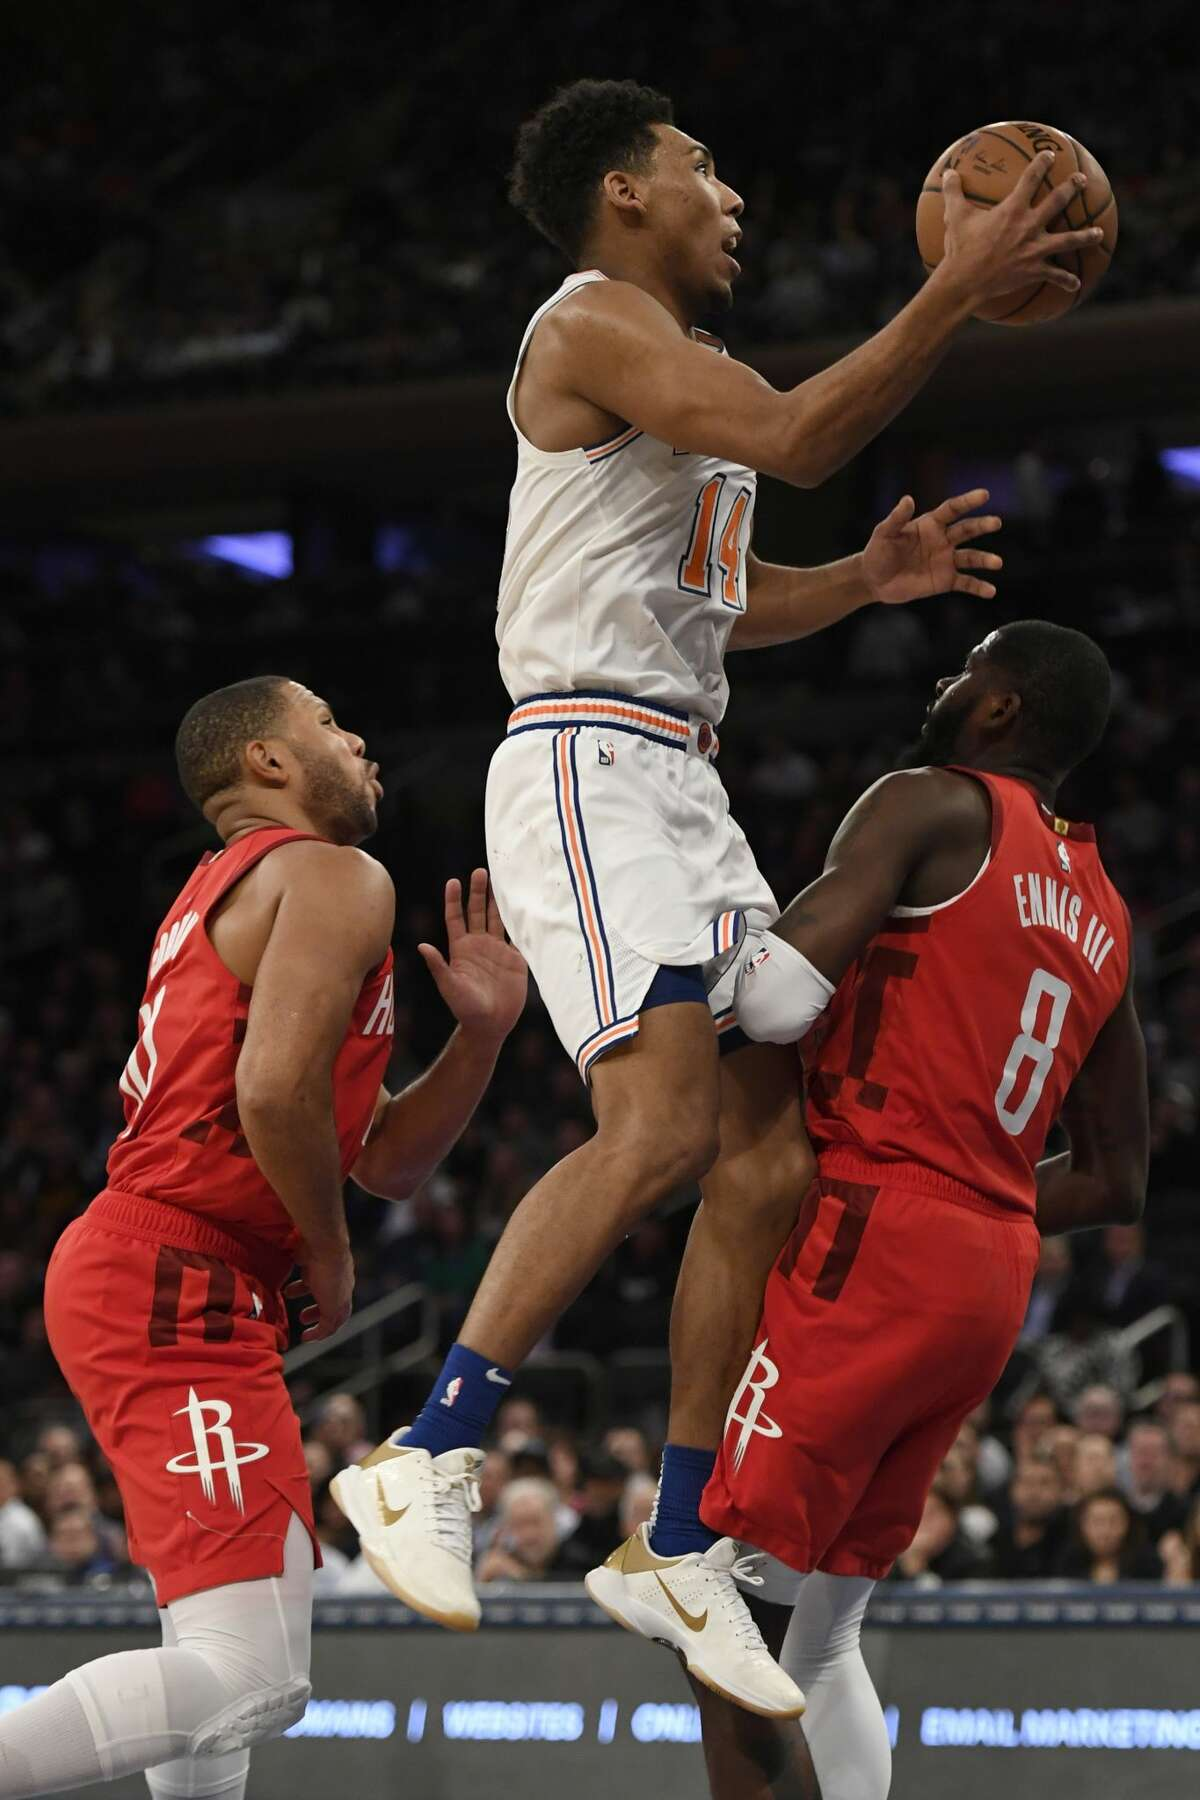 NEW YORK, NEW YORK - JANUARY 23: Allonzo Trier #14 of the New York Knicks attempts a basket during the fourth quarter of the game against the Houston Rockets at Madison Square Garden on January 23, 2019 in New York City. NOTE TO USER: User expressly acknowledges and agrees that, by downloading and or using this photograph, User is consenting to the terms and conditions of the Getty Images License Agreement. (Photo by Sarah Stier/Getty Images)